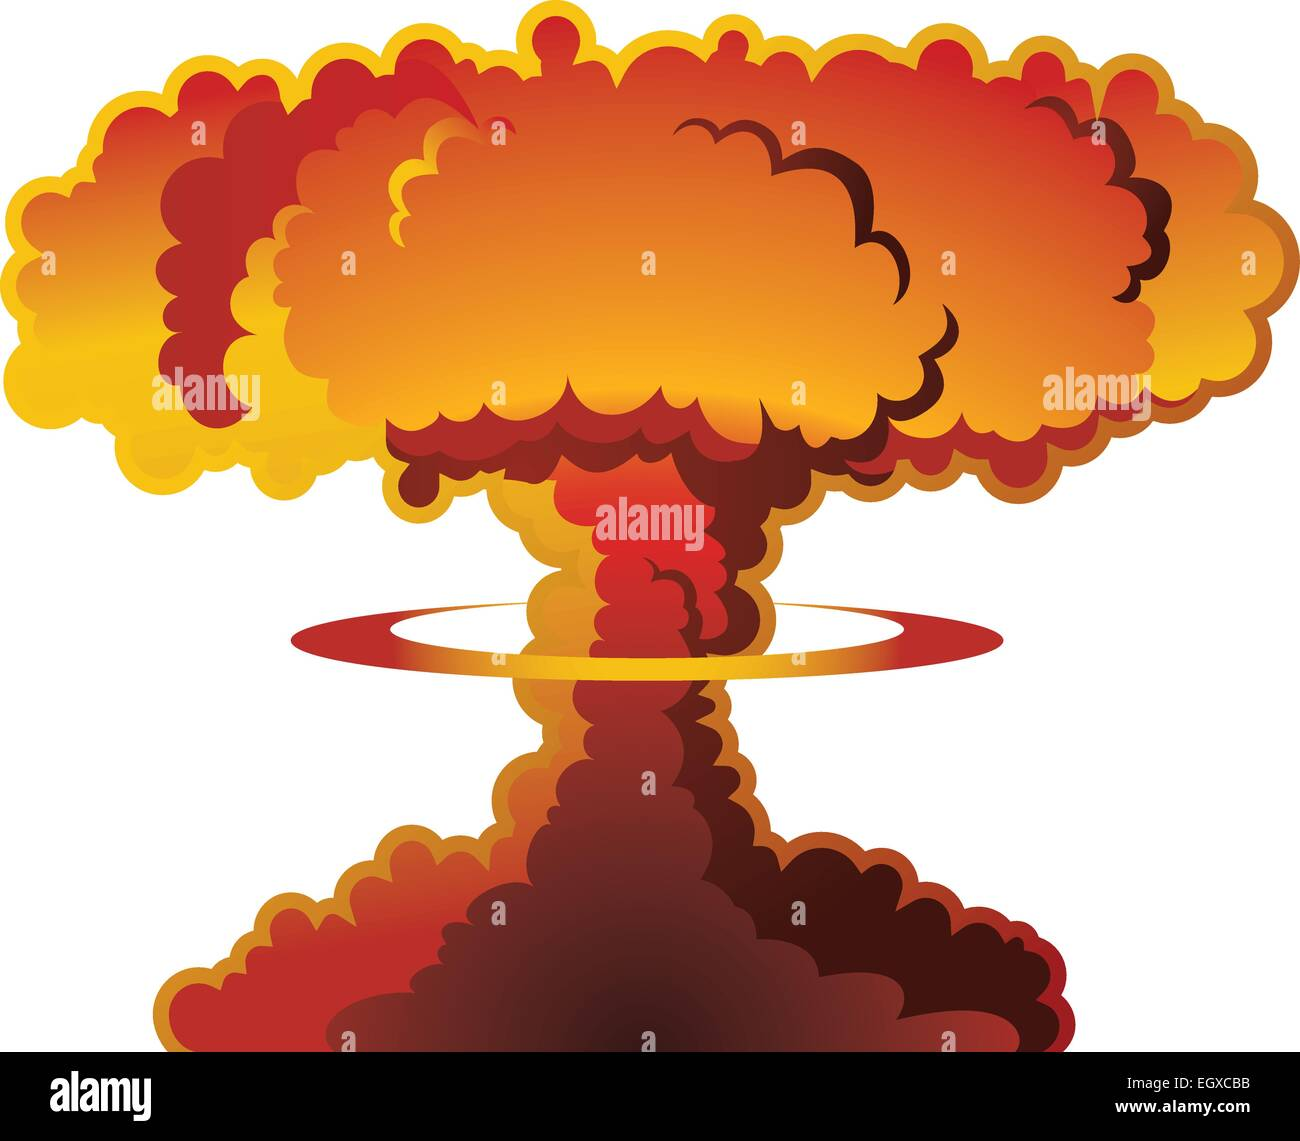 A nuclear weapon exploding, forming a mushroom cloud. - Stock Vector